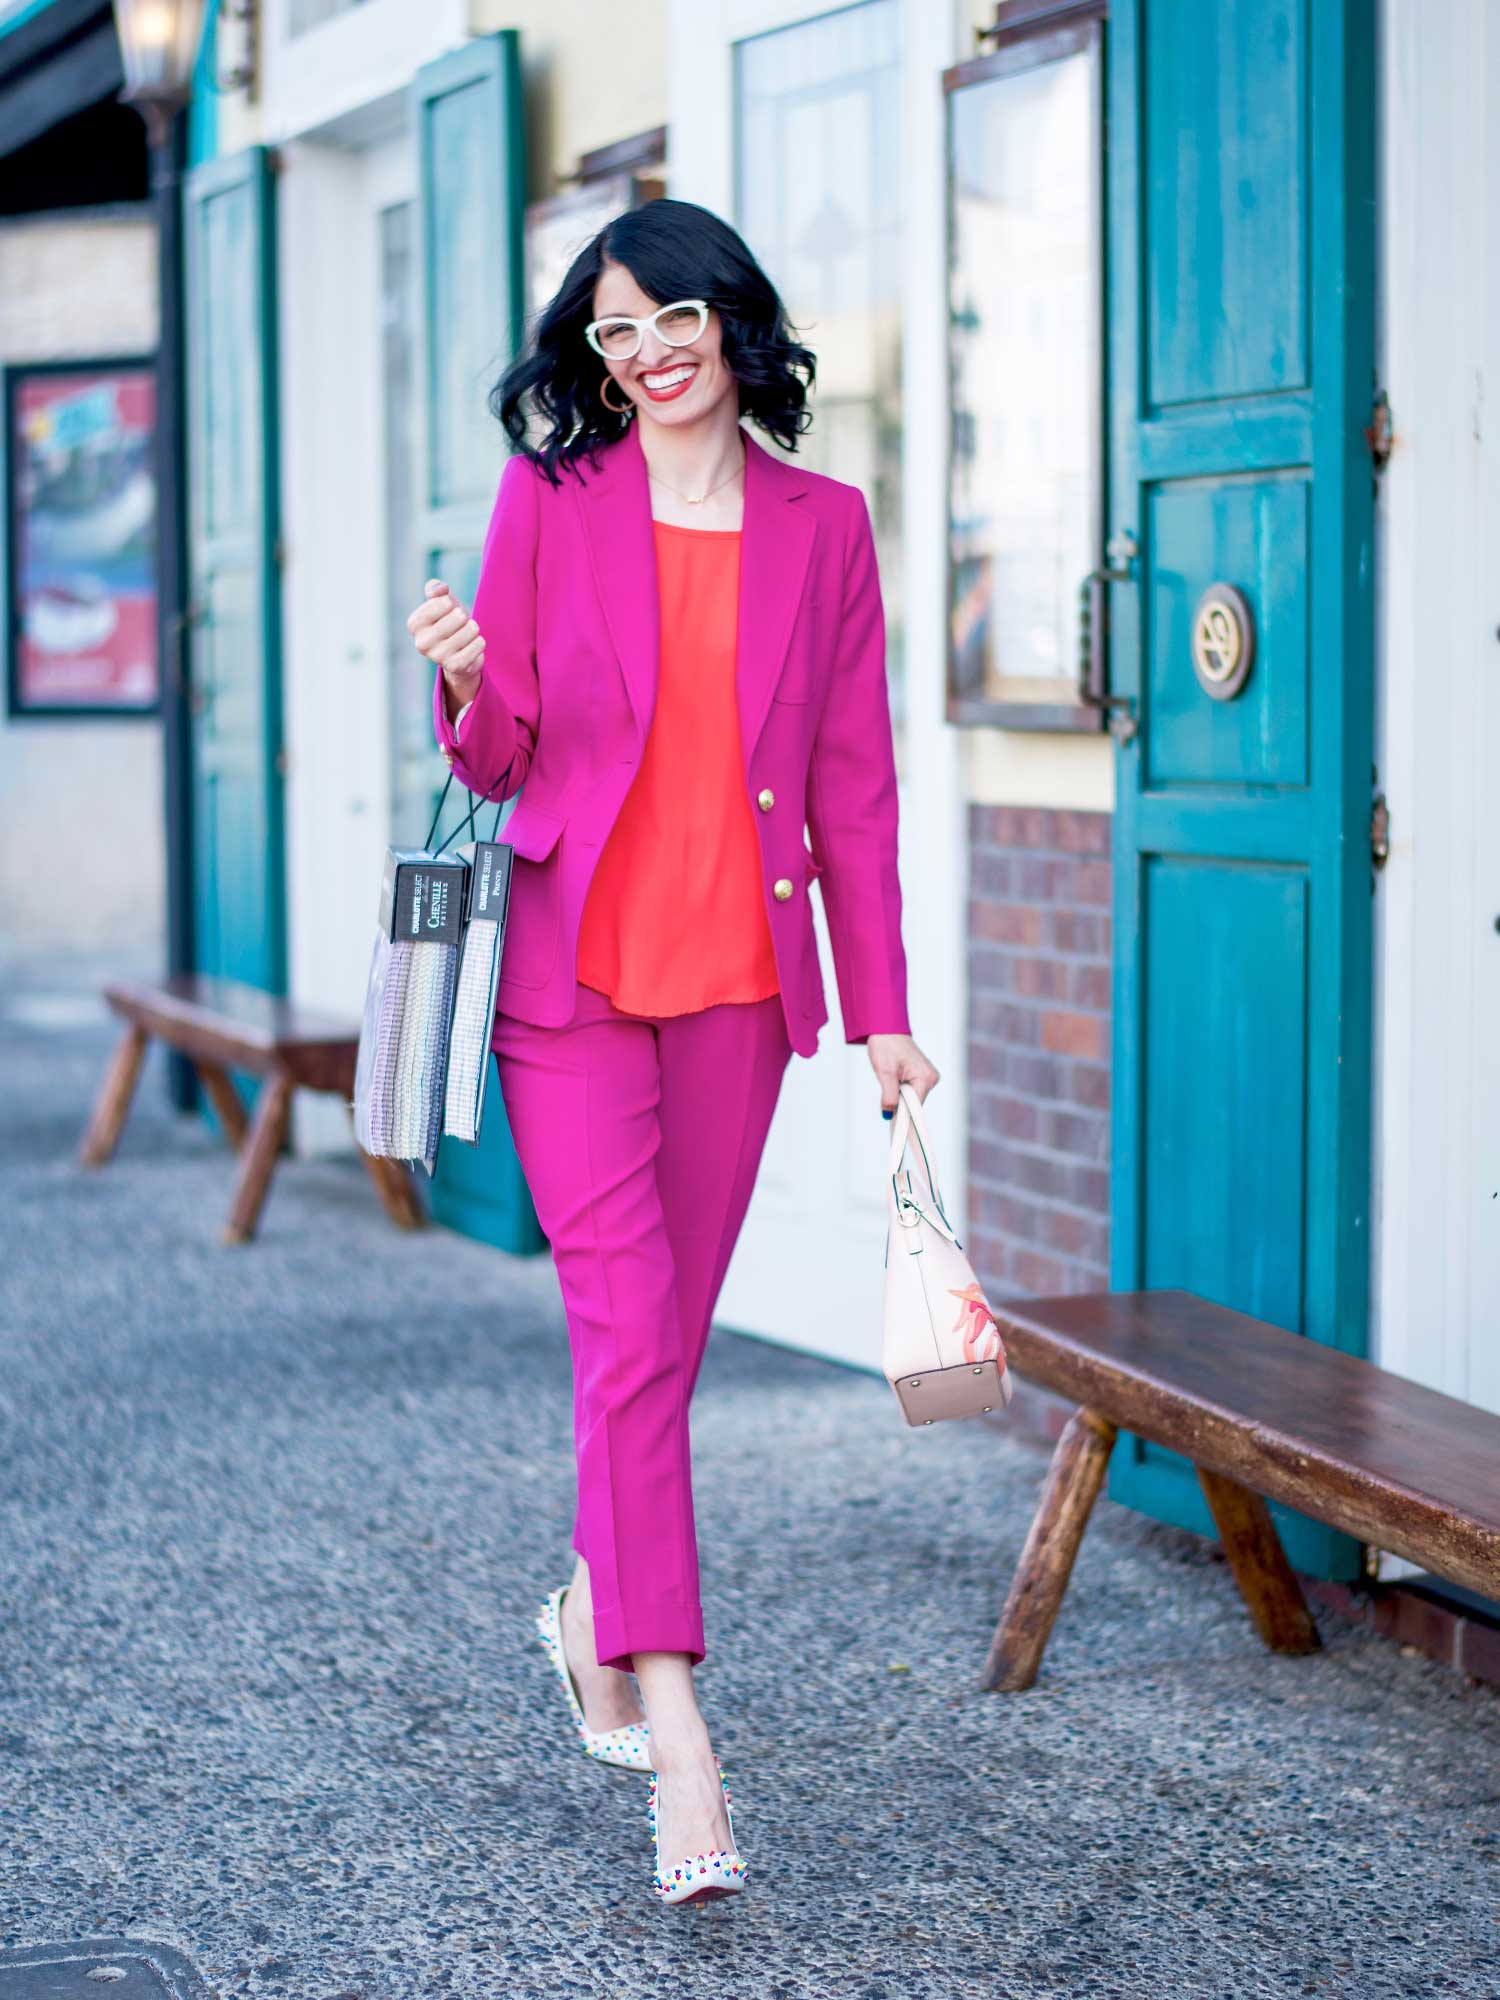 jenna-pilant-san-diego-fashion-blogger-lucky-little-mustardseed-how-to-dress-for-a-business-meeting-j-crew-womens-suit-6